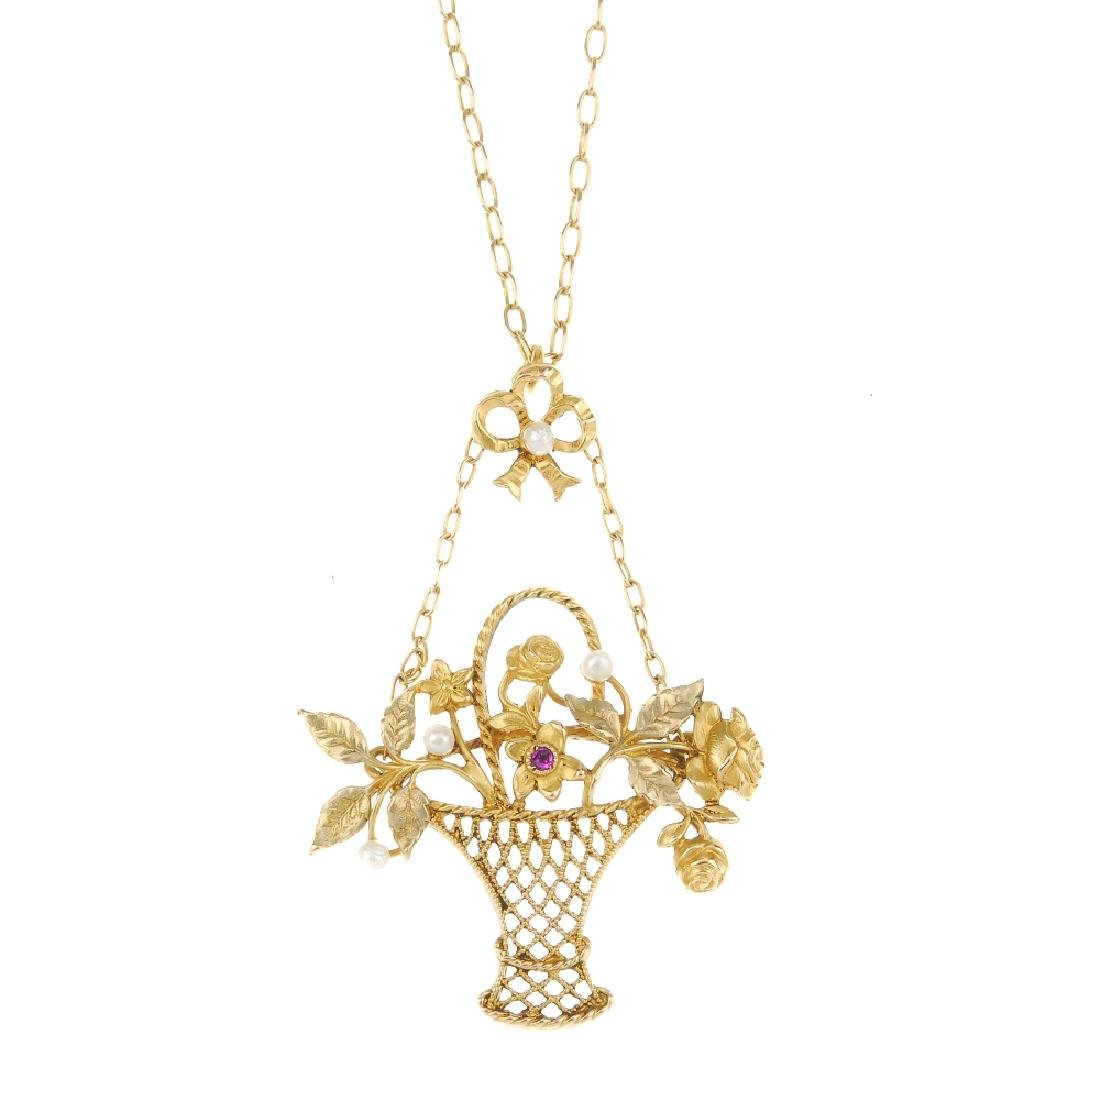 Three items of jewellery. To include a necklace, the